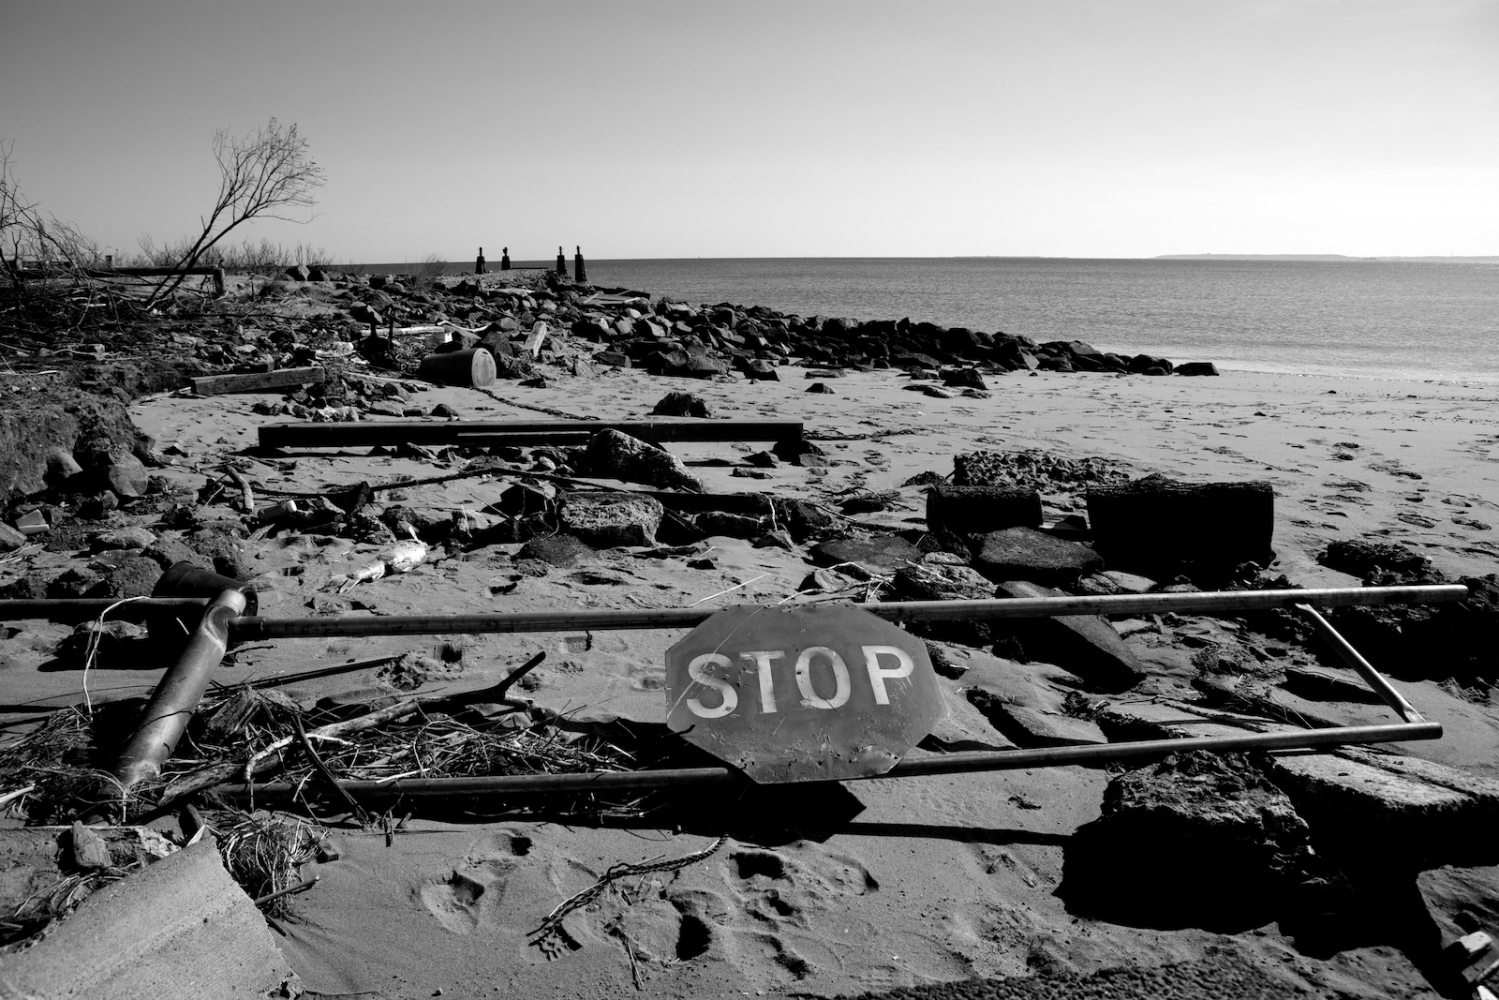 A STOP sign lays on the beach in New Dorp Beach, Staten Island, N.Y. on Nov. 9, 2012. New Dorp Beach was devastated by Hurricane Sandy and now faces the long road to recovery.